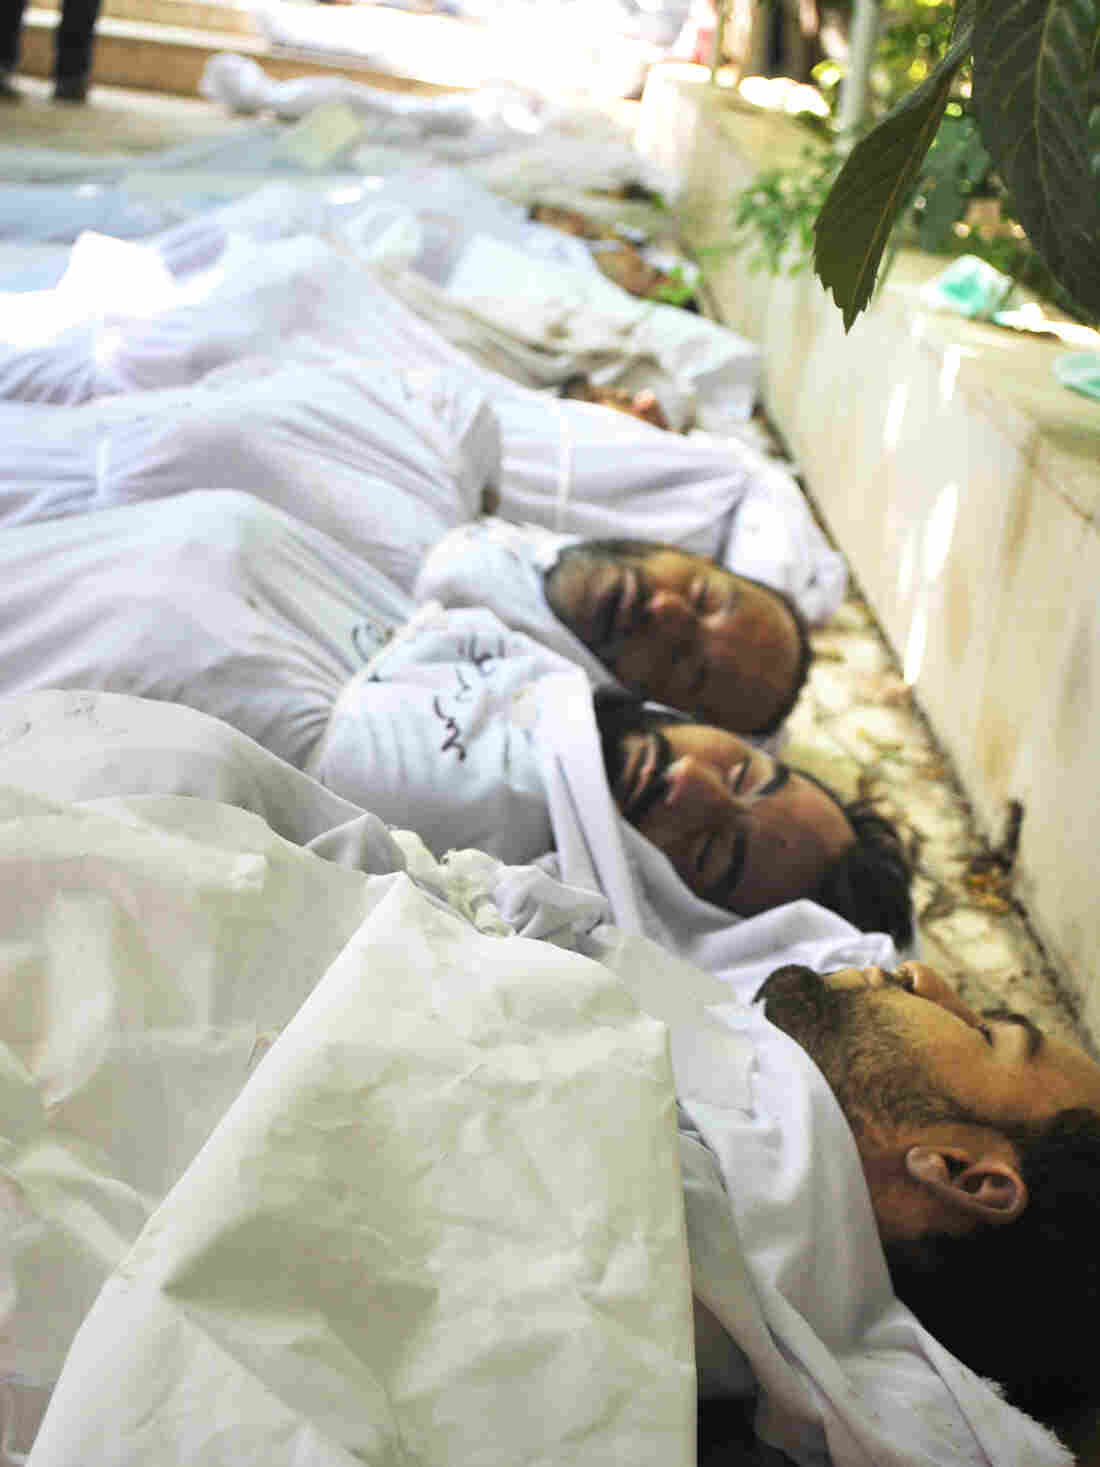 Syrians killed in a chemical weapons attack were taken to a field hospital in Eastern Ghouta, in the suburbs of Damascus, one year ago on Aug. 21, 2013. More than 1,400 people were killed in the attack blamed on the Syrian government, which continues to besiege the rebel-held area to this day.